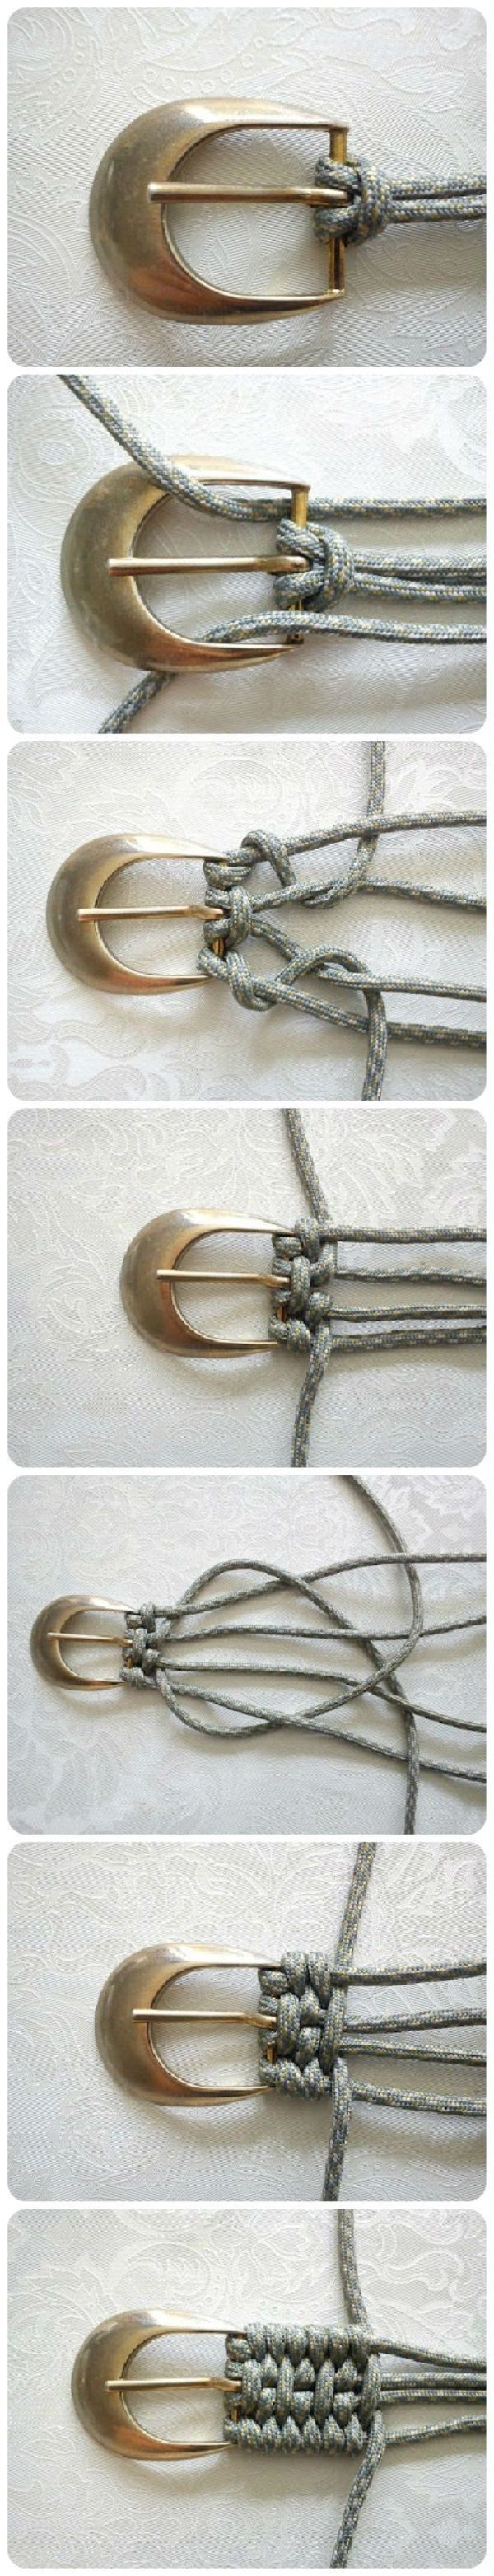 Useful and Creative DIY Ideas to try in 2015  (49)